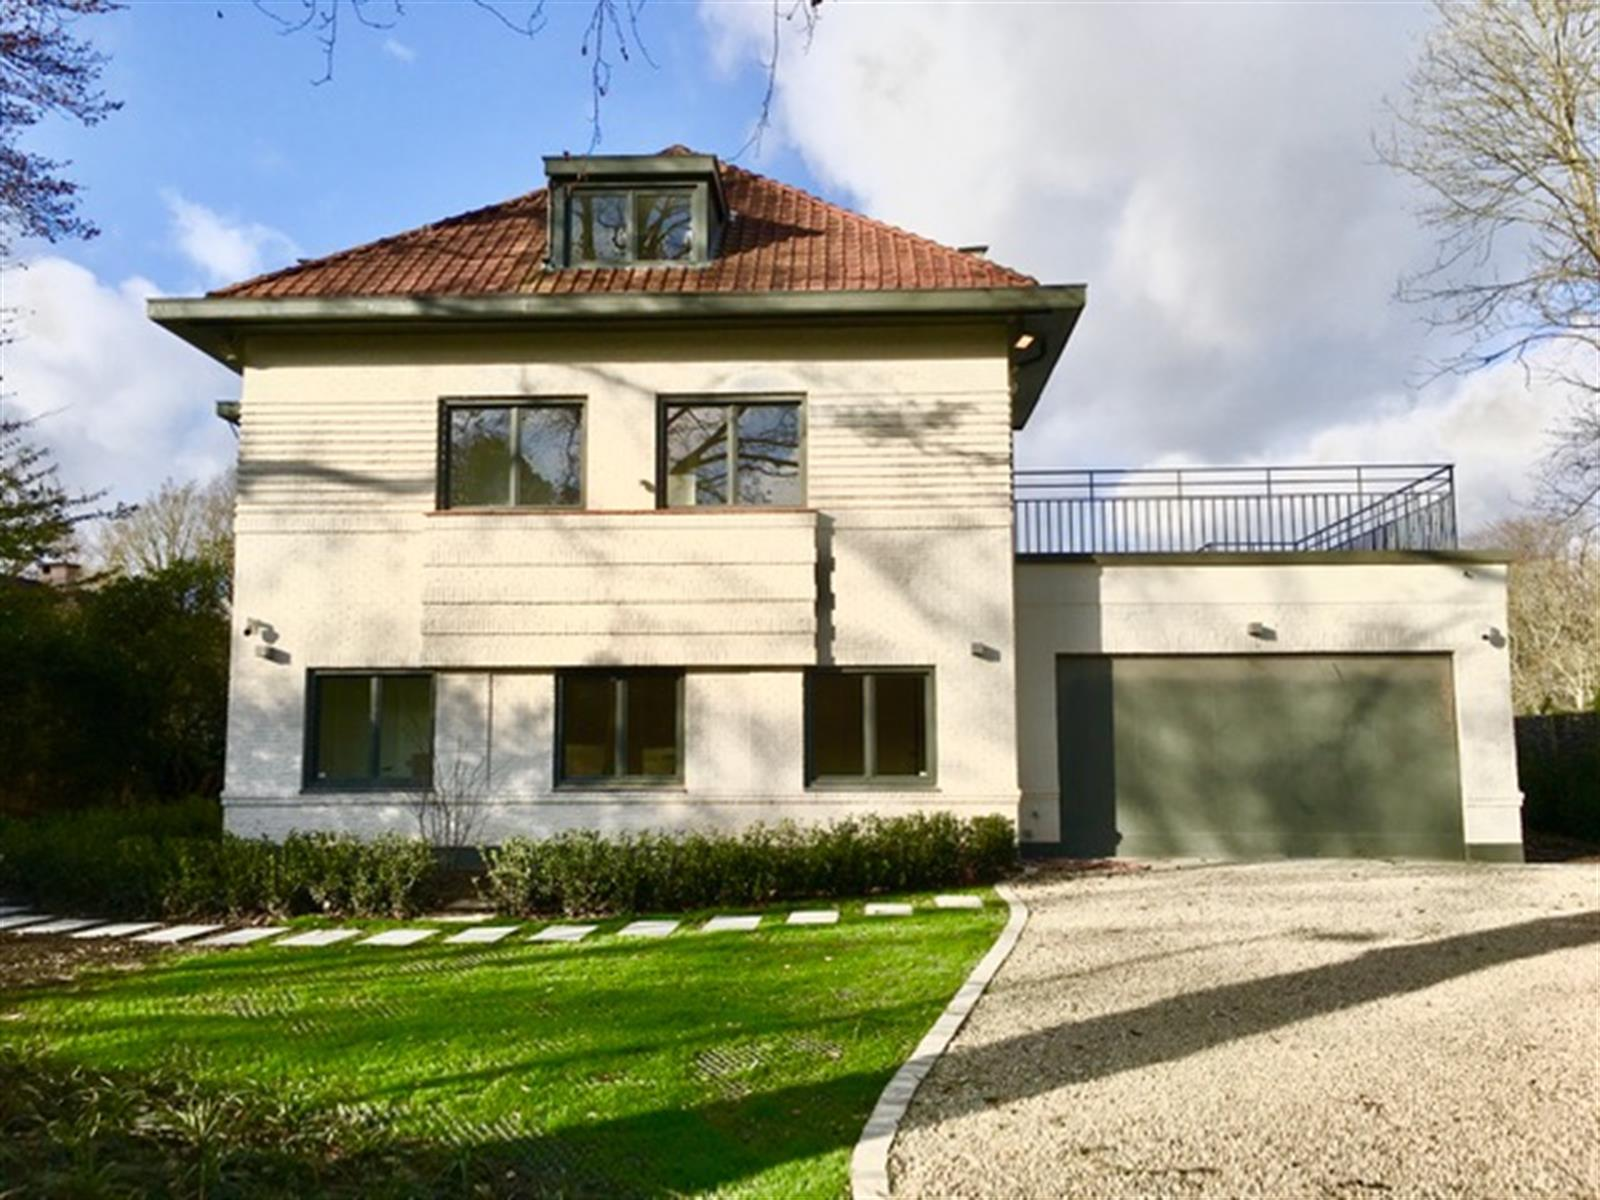 Villa - Uccle - #4043455-26